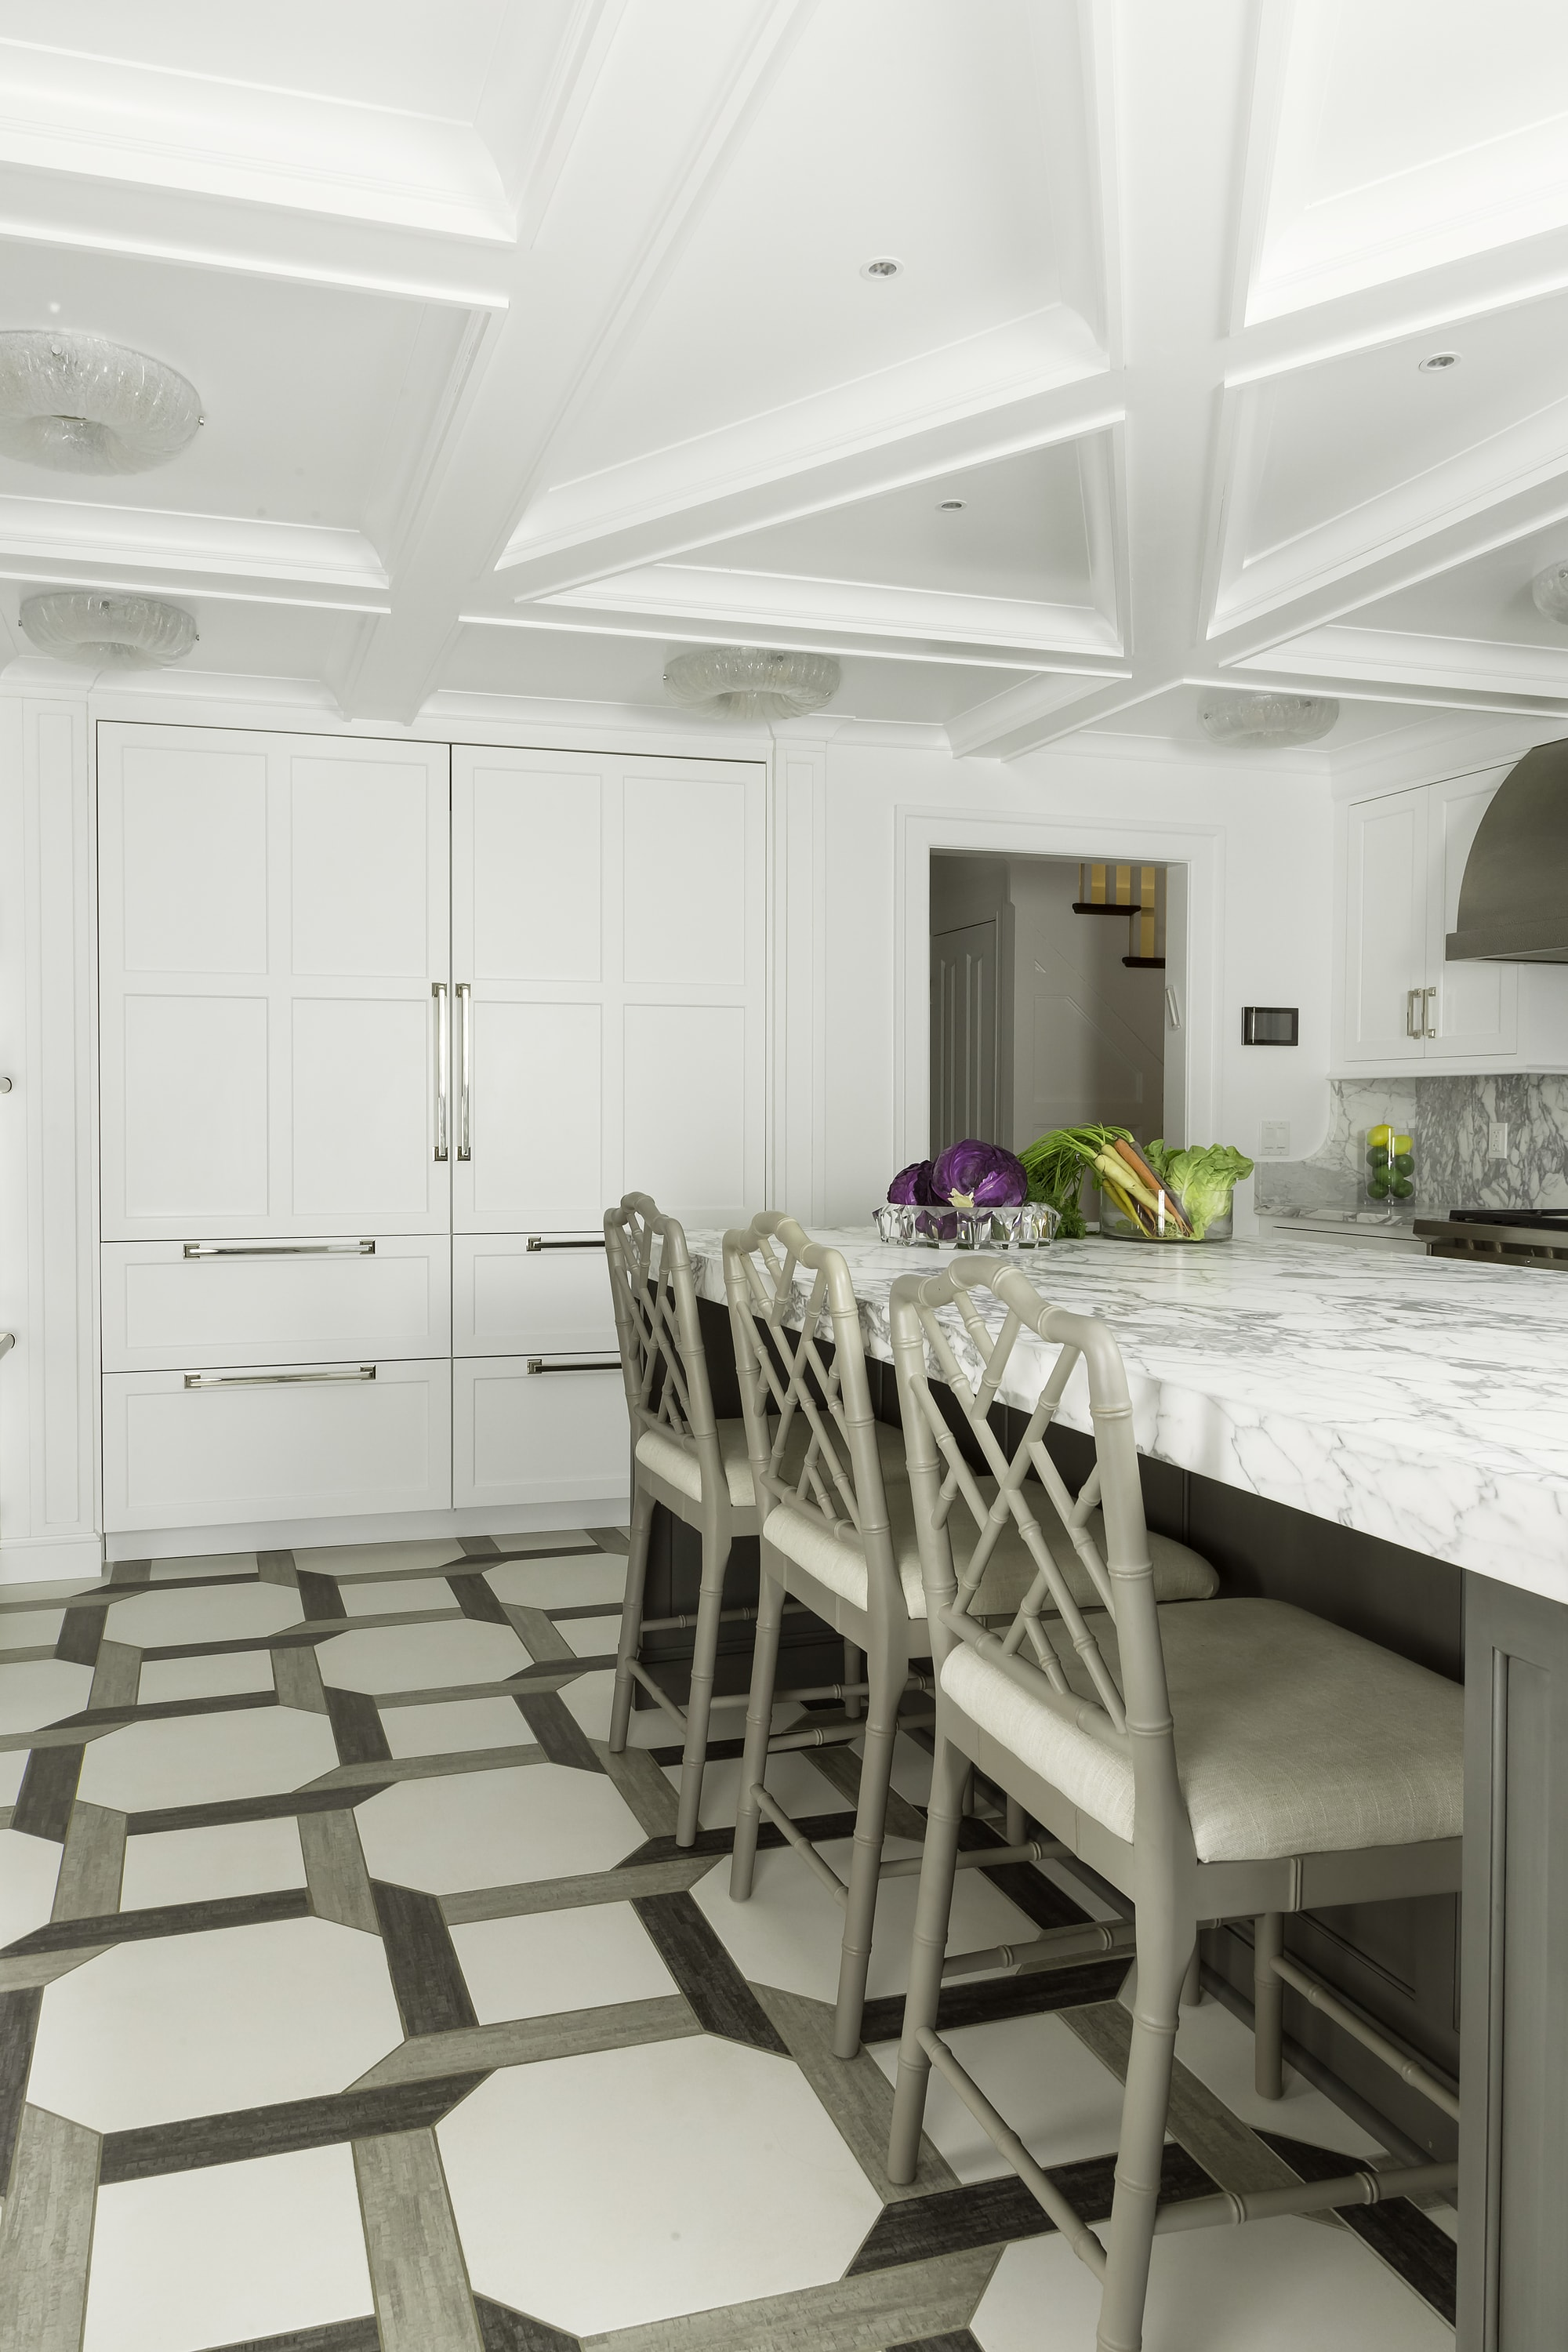 Transitional style kitchen with three color matched chairs